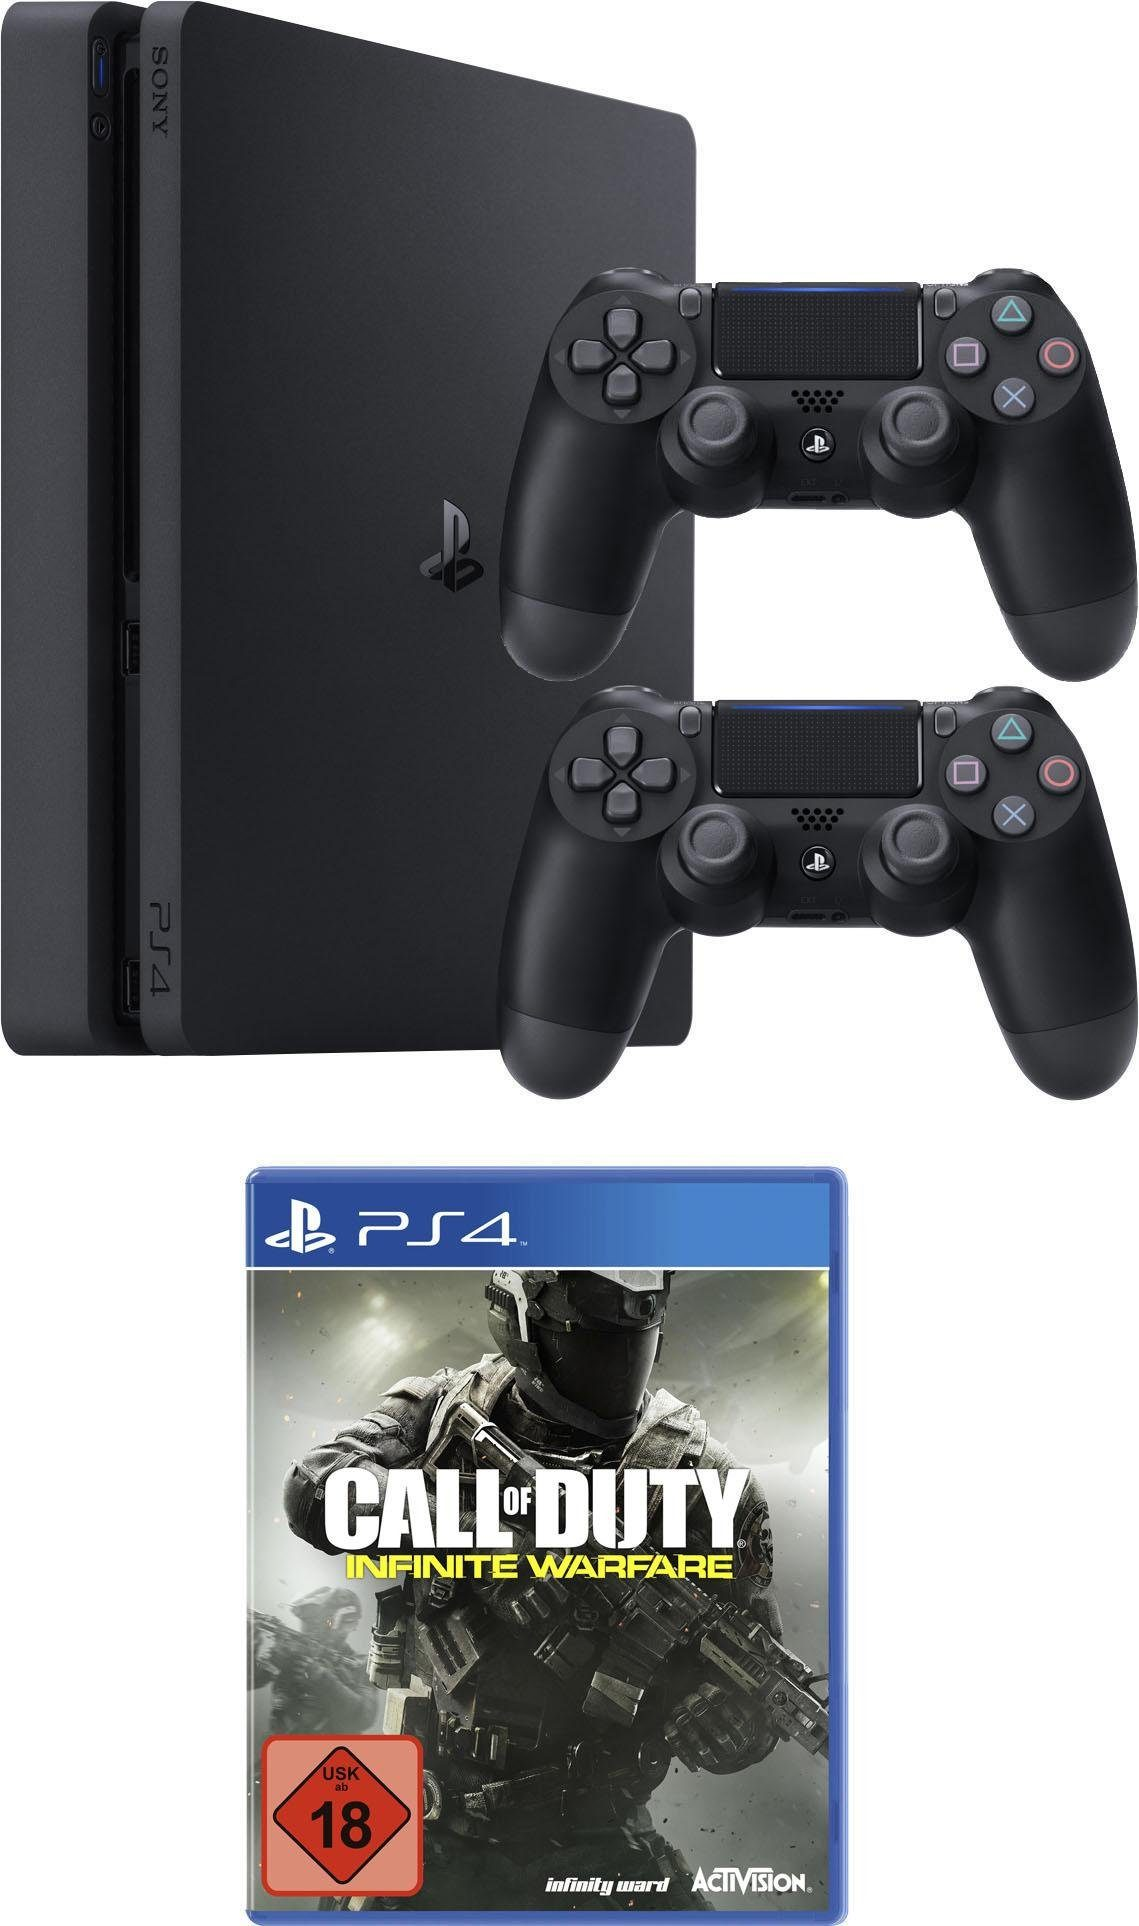 PlayStation 4 (PS4) 1TB Slim + Call of Duty: Infinite Warfare + 2. Controller